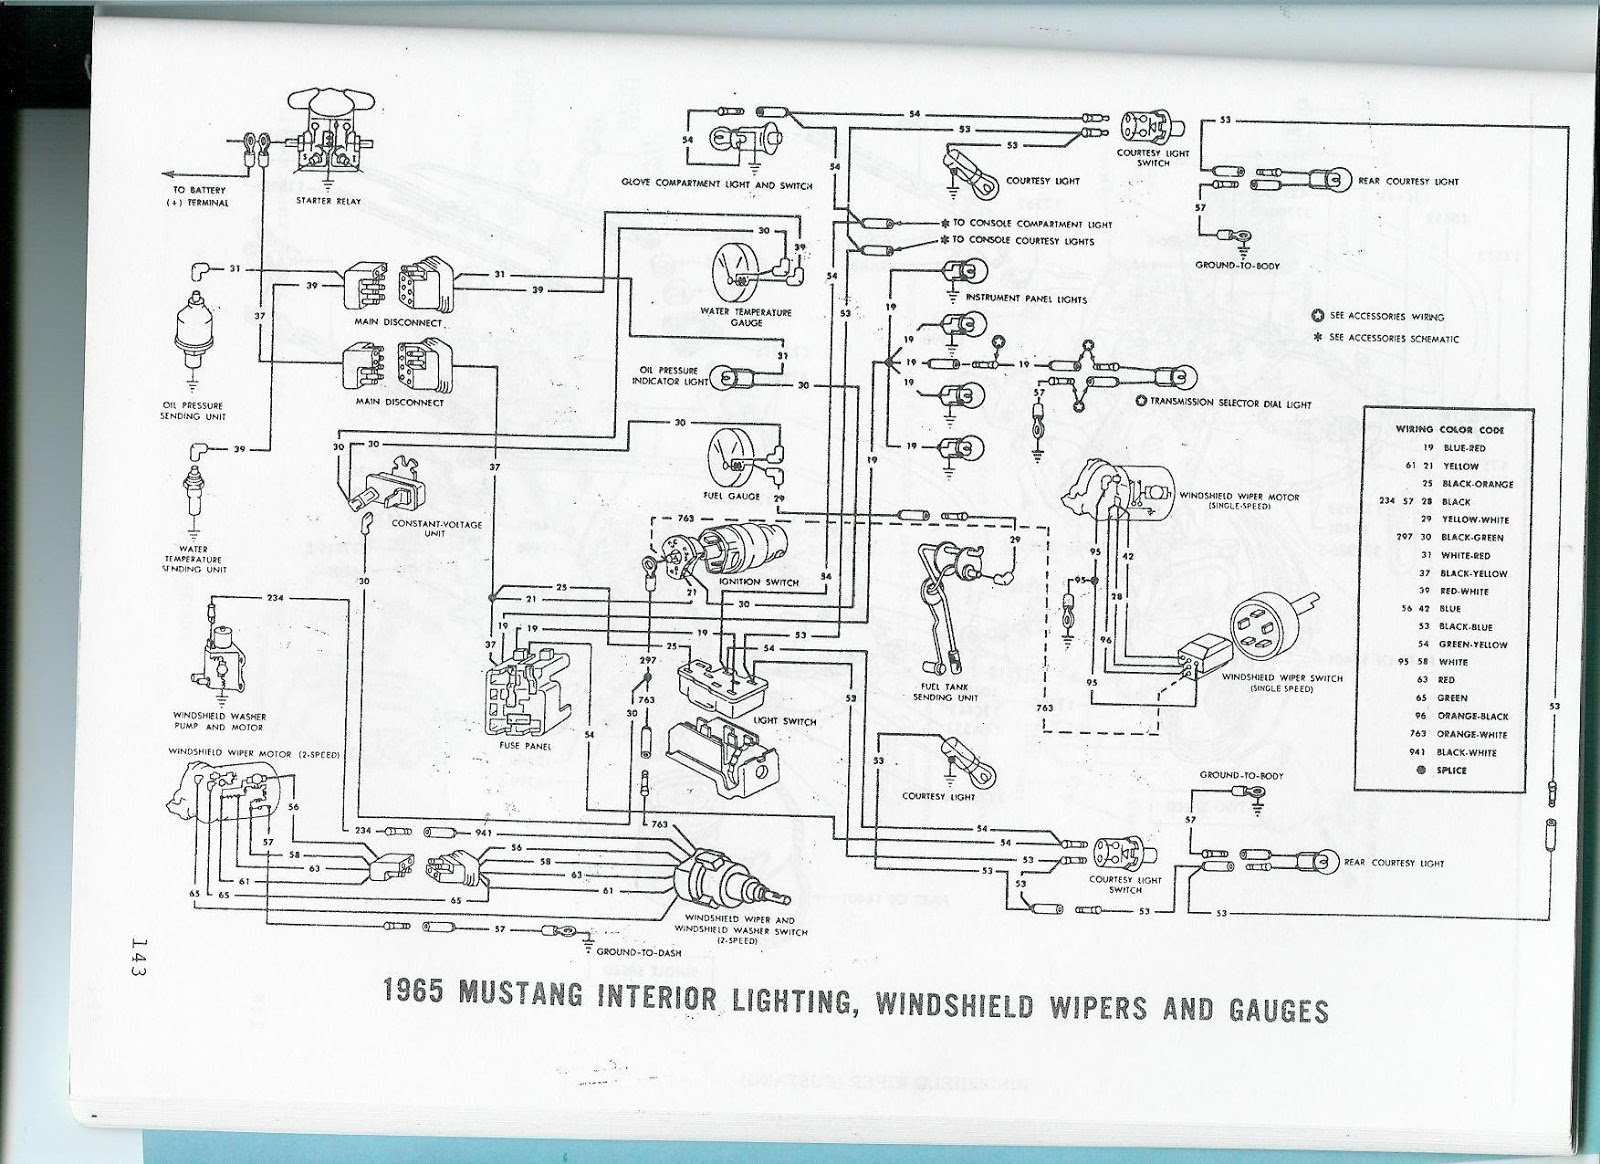 care feeding ponies 1965 mustang wiring diagrams ford 1969 pontiac gto wiring diagram 1967 gto [ 1600 x 1164 Pixel ]